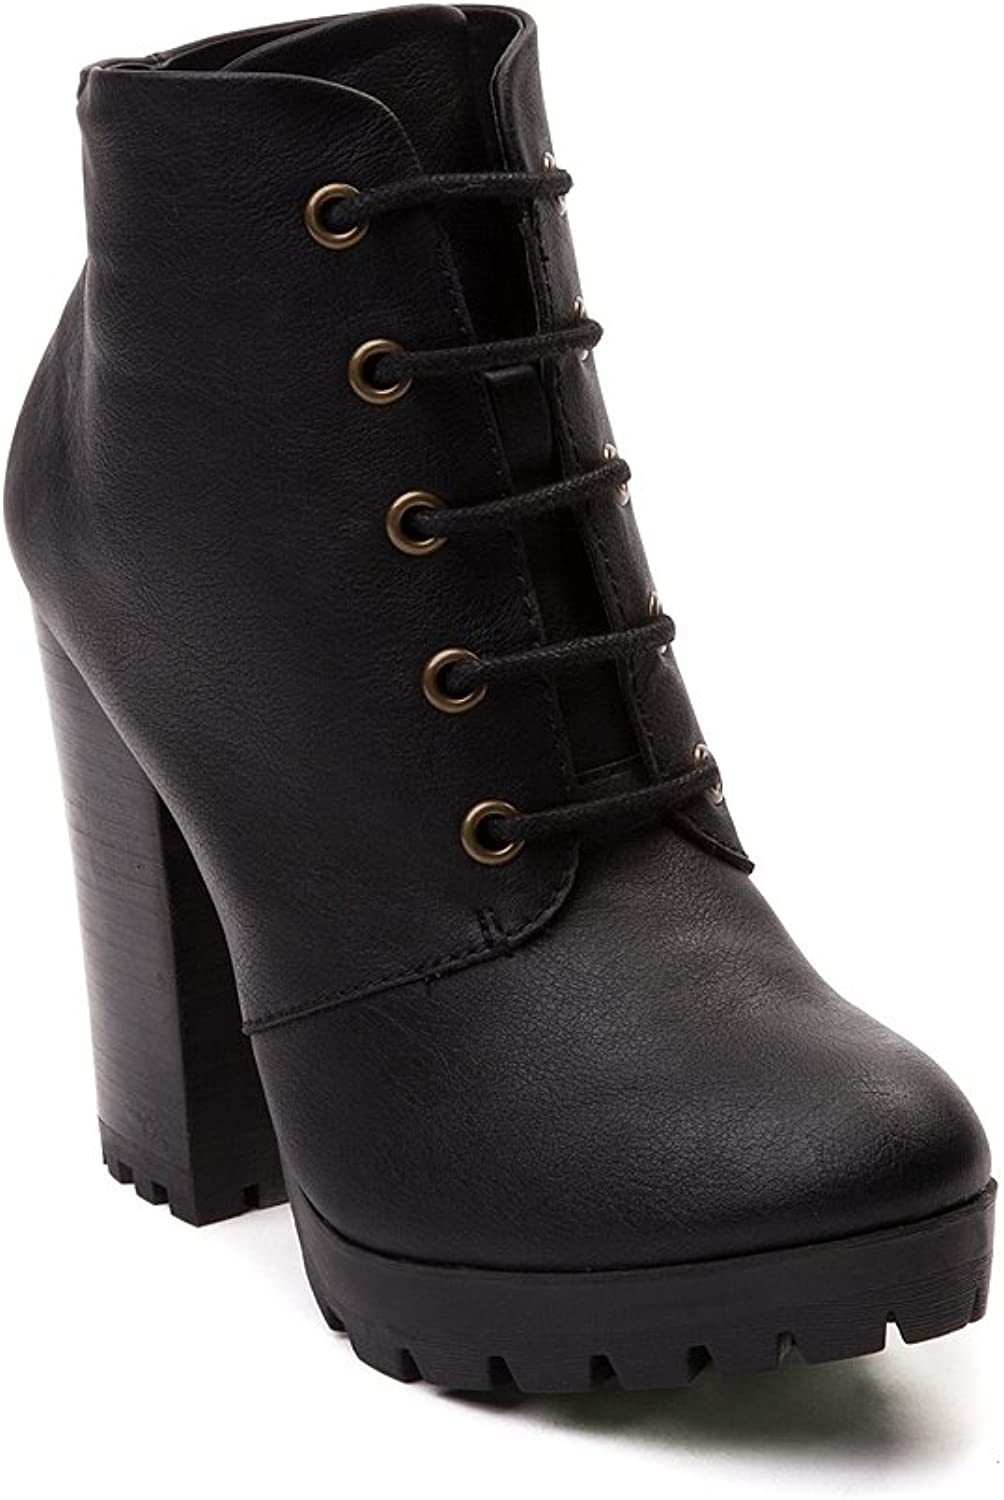 Madden girl Women's Gabby Heeled Boot